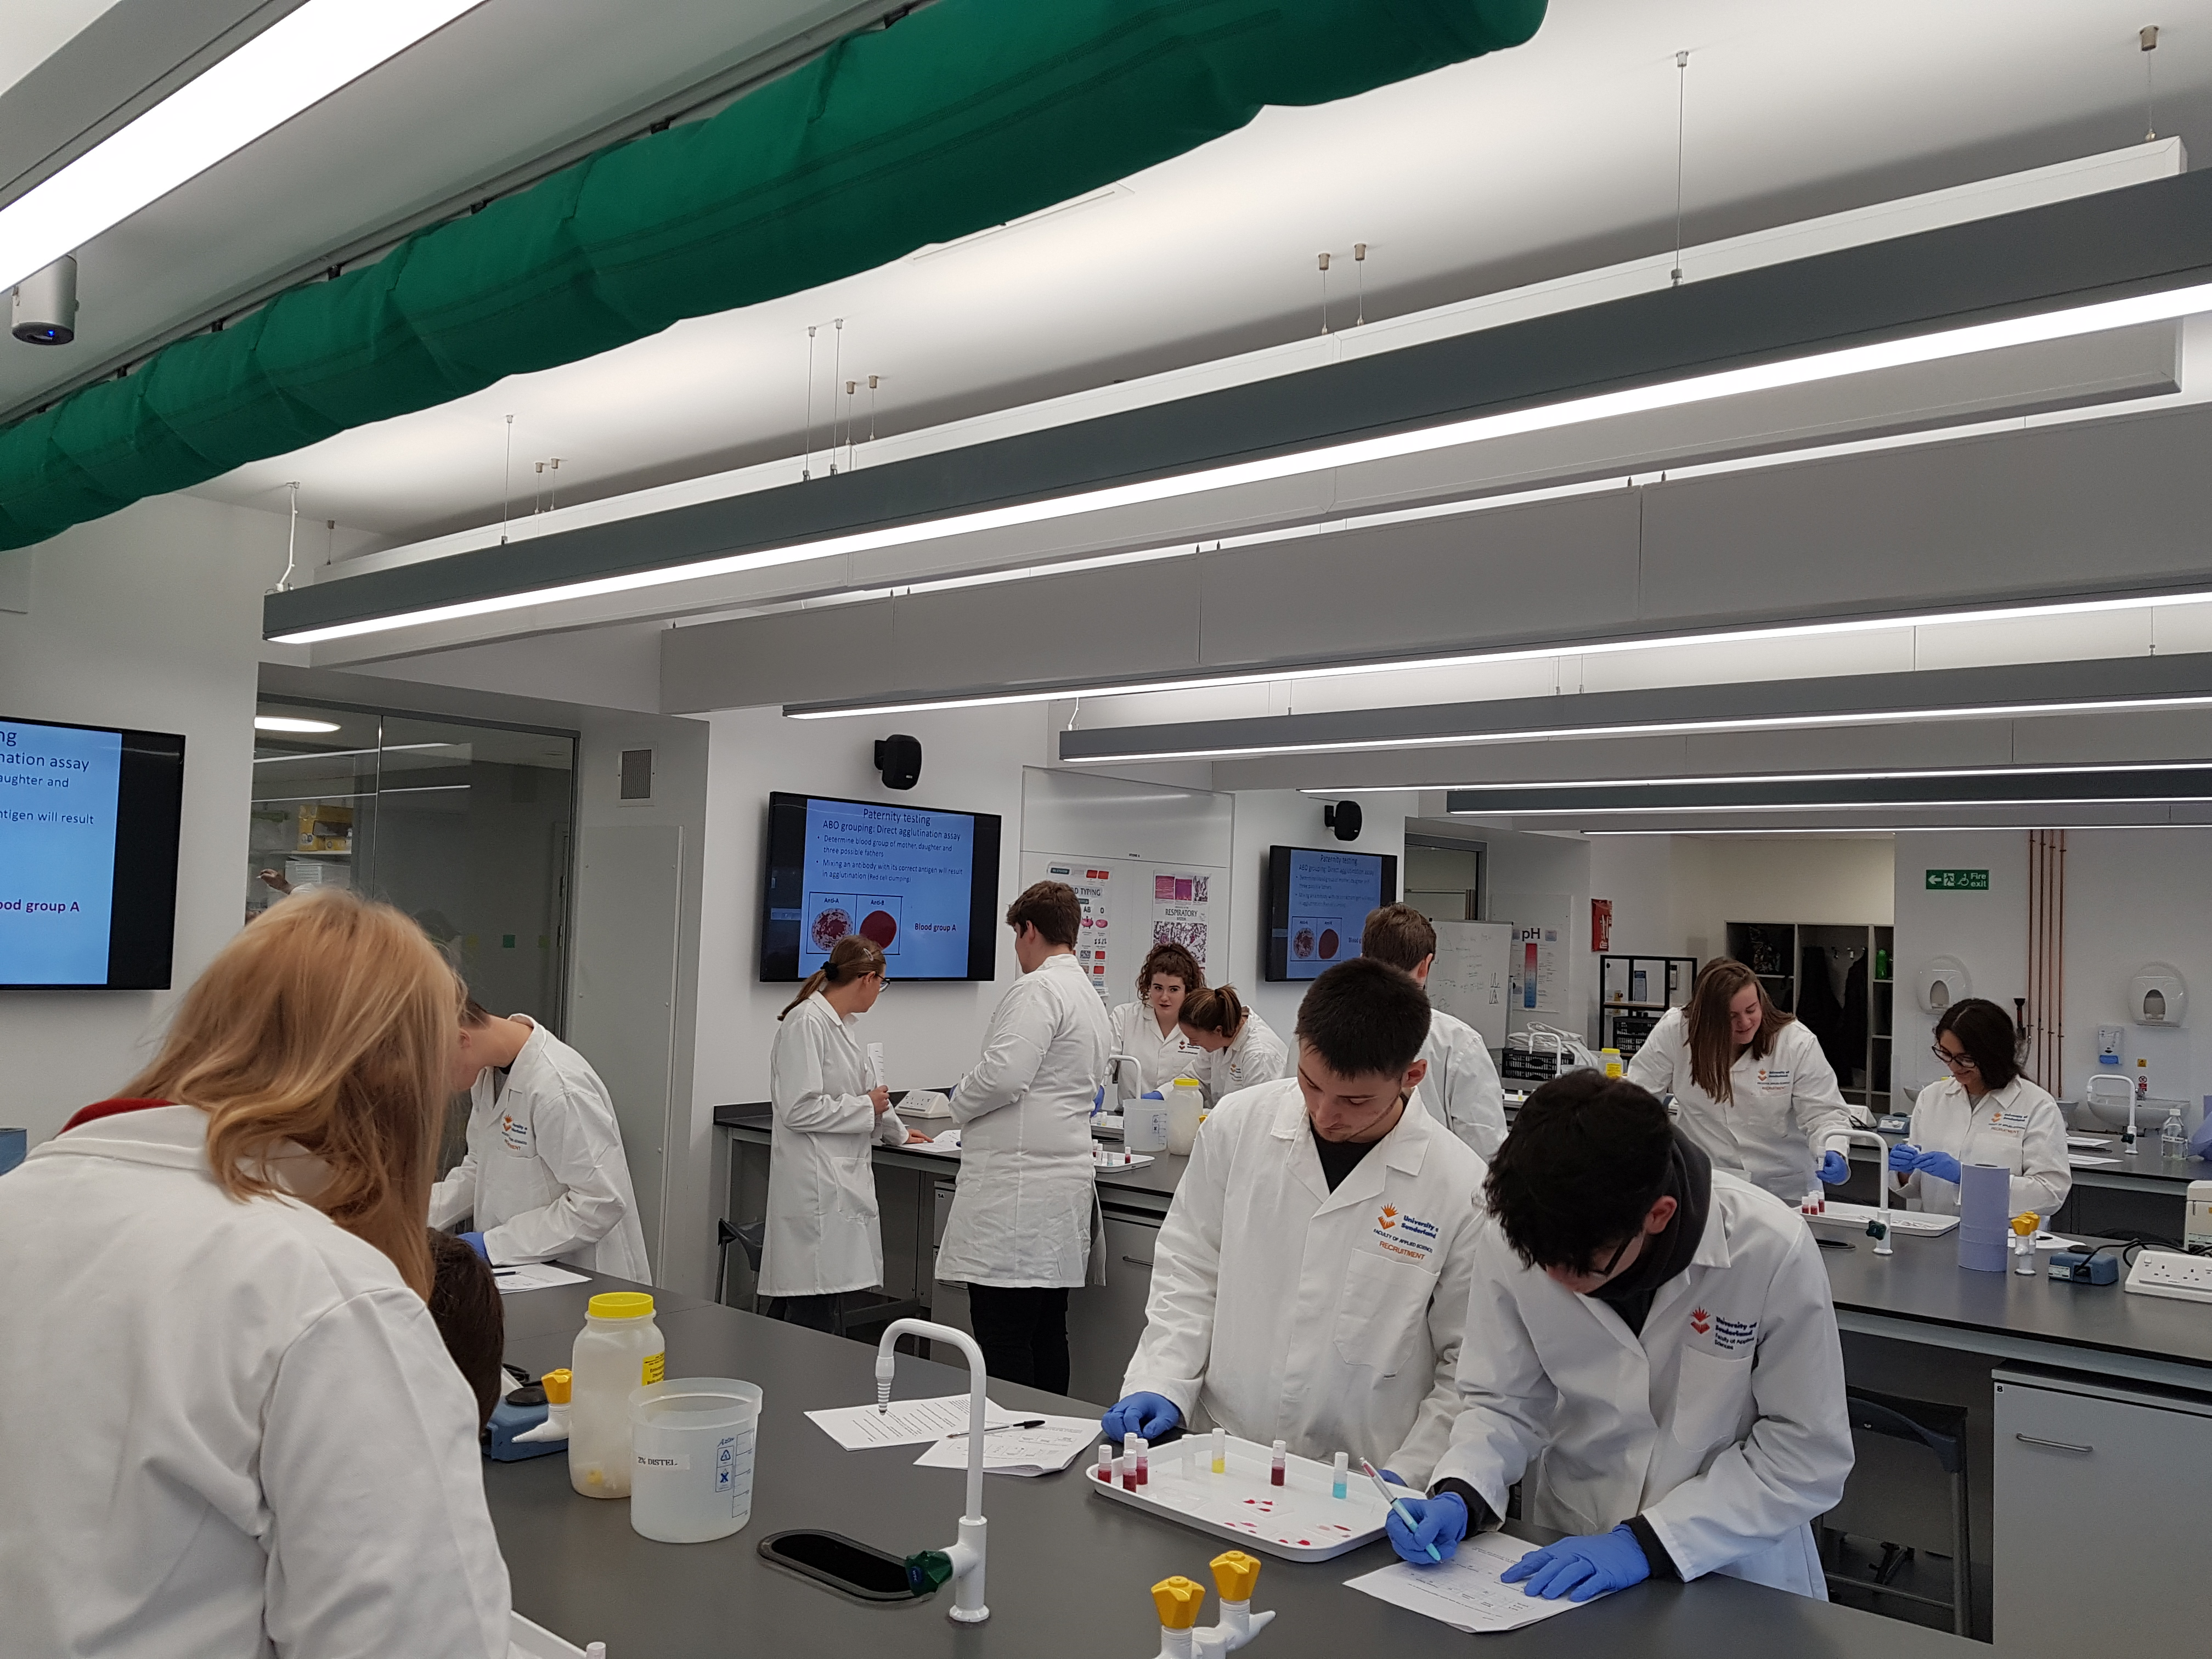 Science students sample new medicine course at University of Sunderland